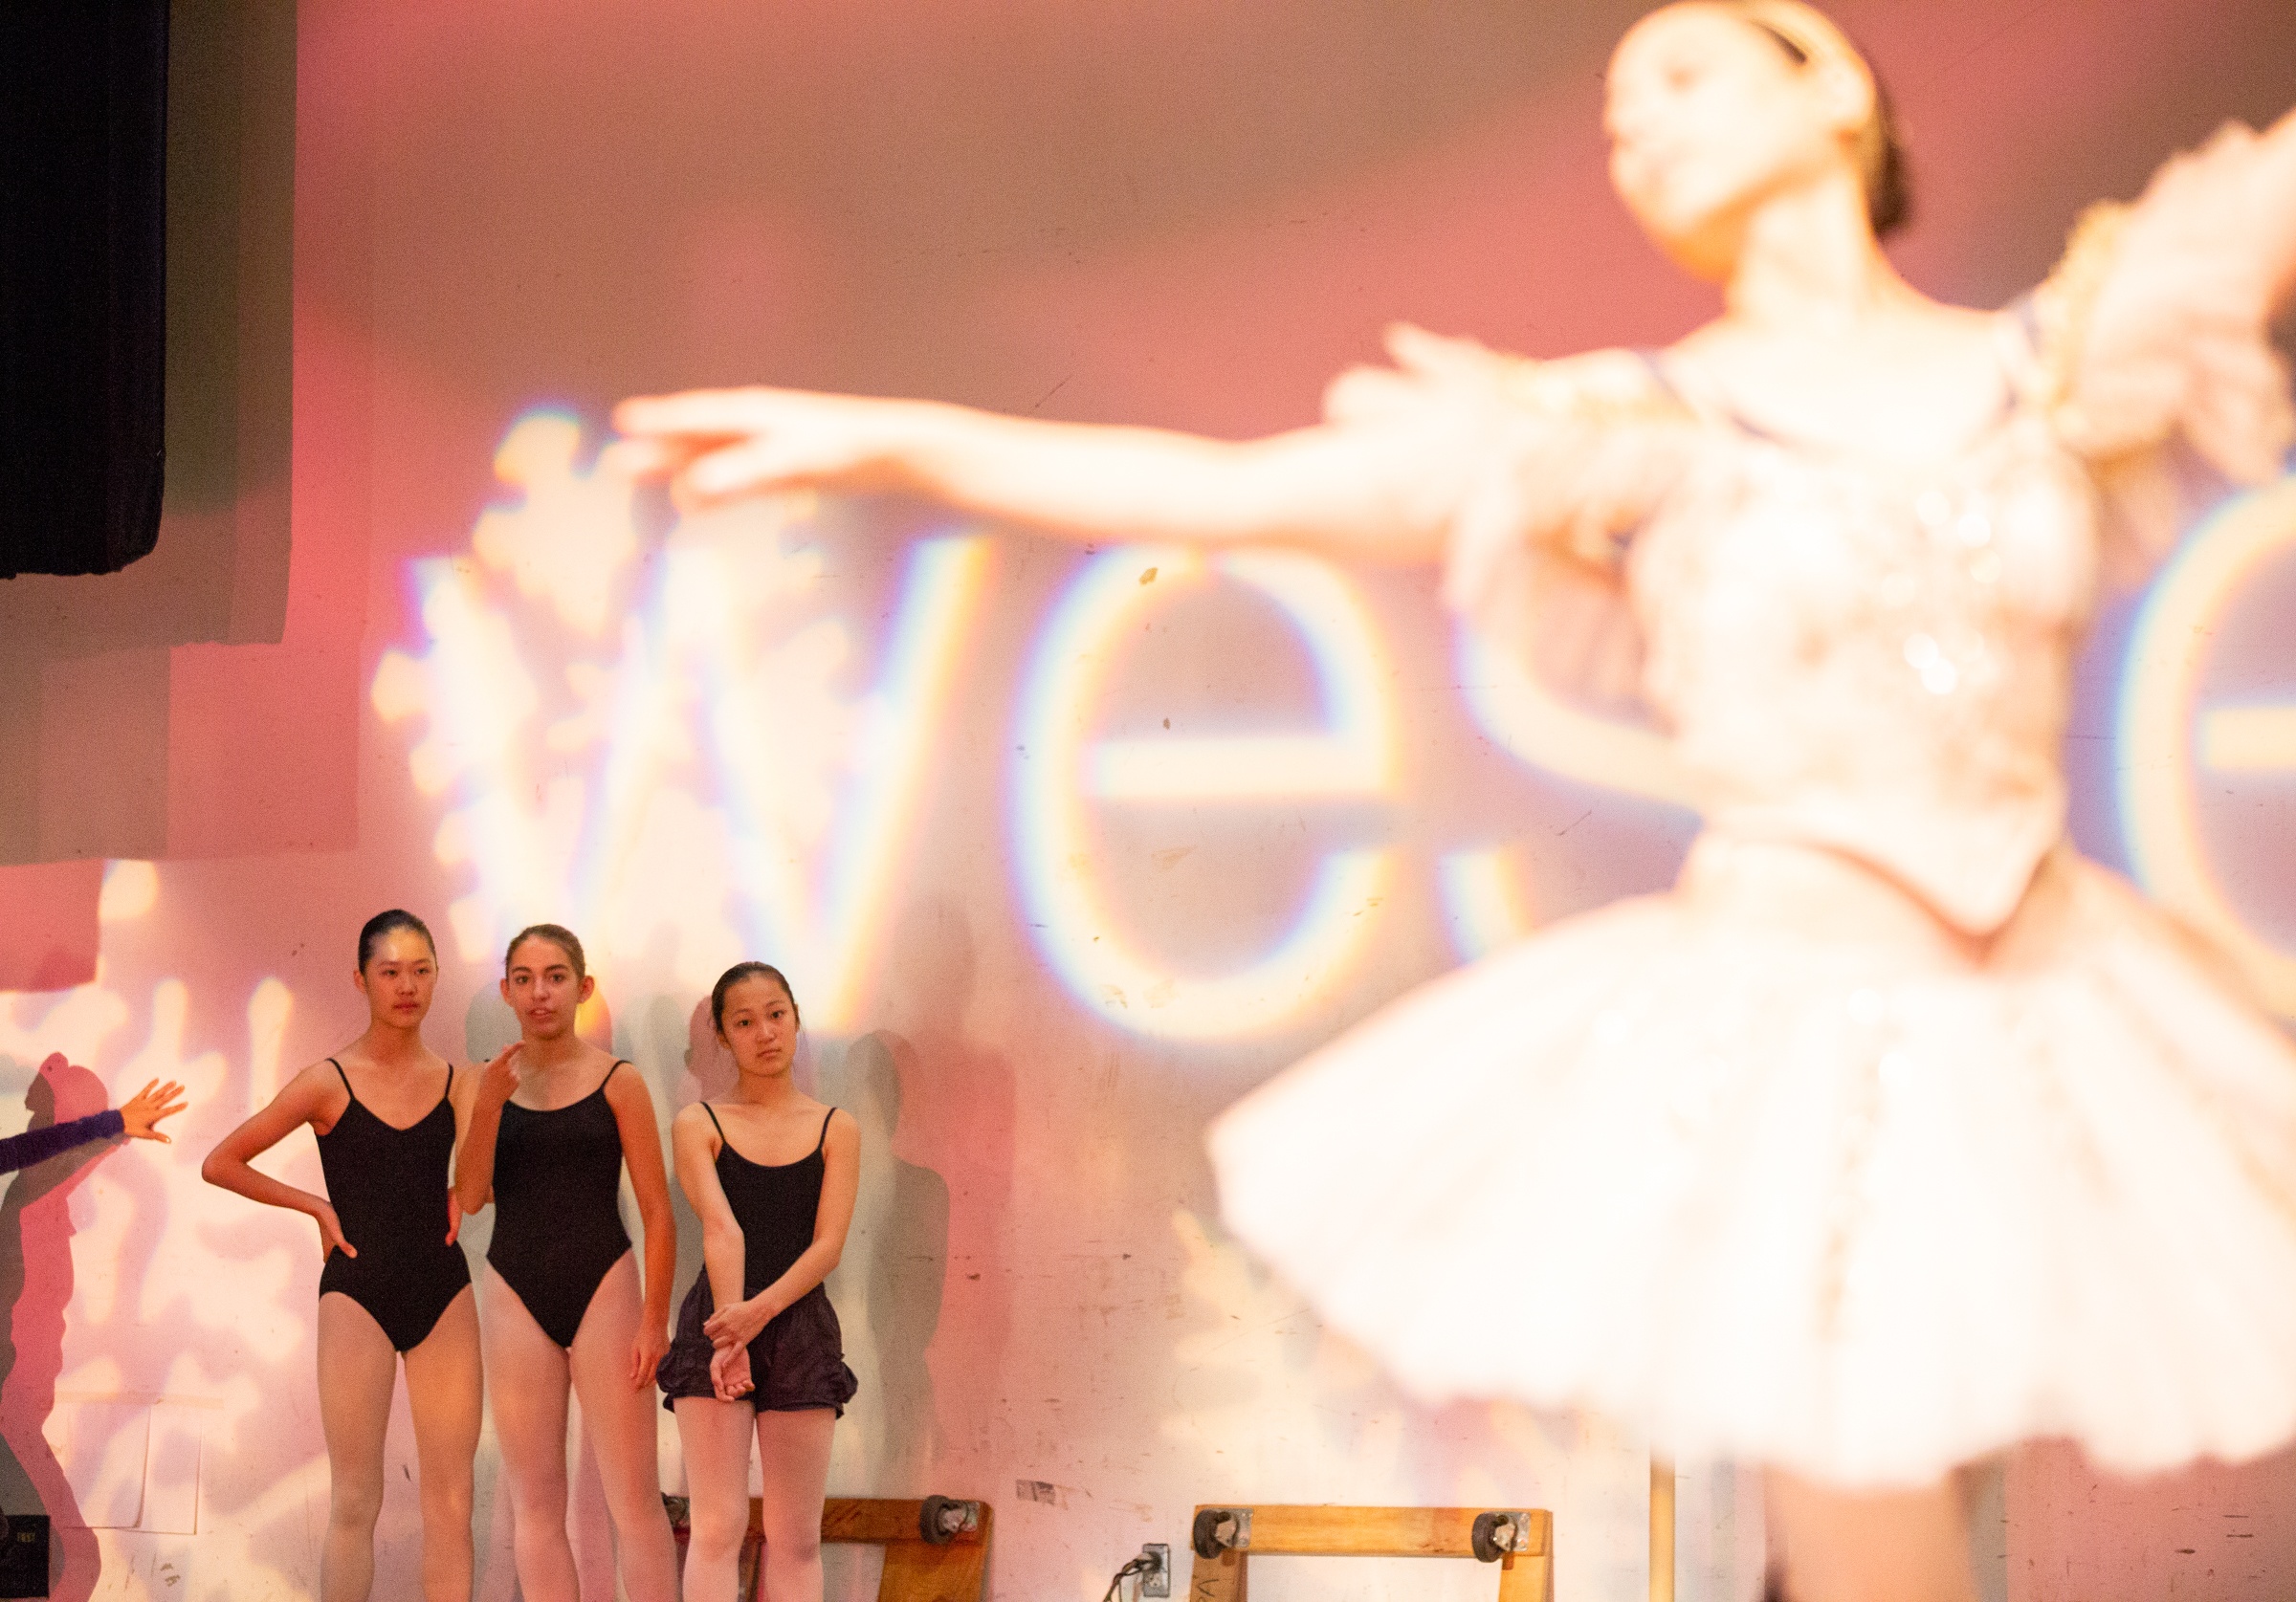 """Dancers watch Alison Share, who plays the Sugar Plum Fairy, rehearse before Western Ballet's production of """"The Nutcracker"""" at the Mountain View Center for the Performing Arts on Dec. 2. Share is a professional dancer."""